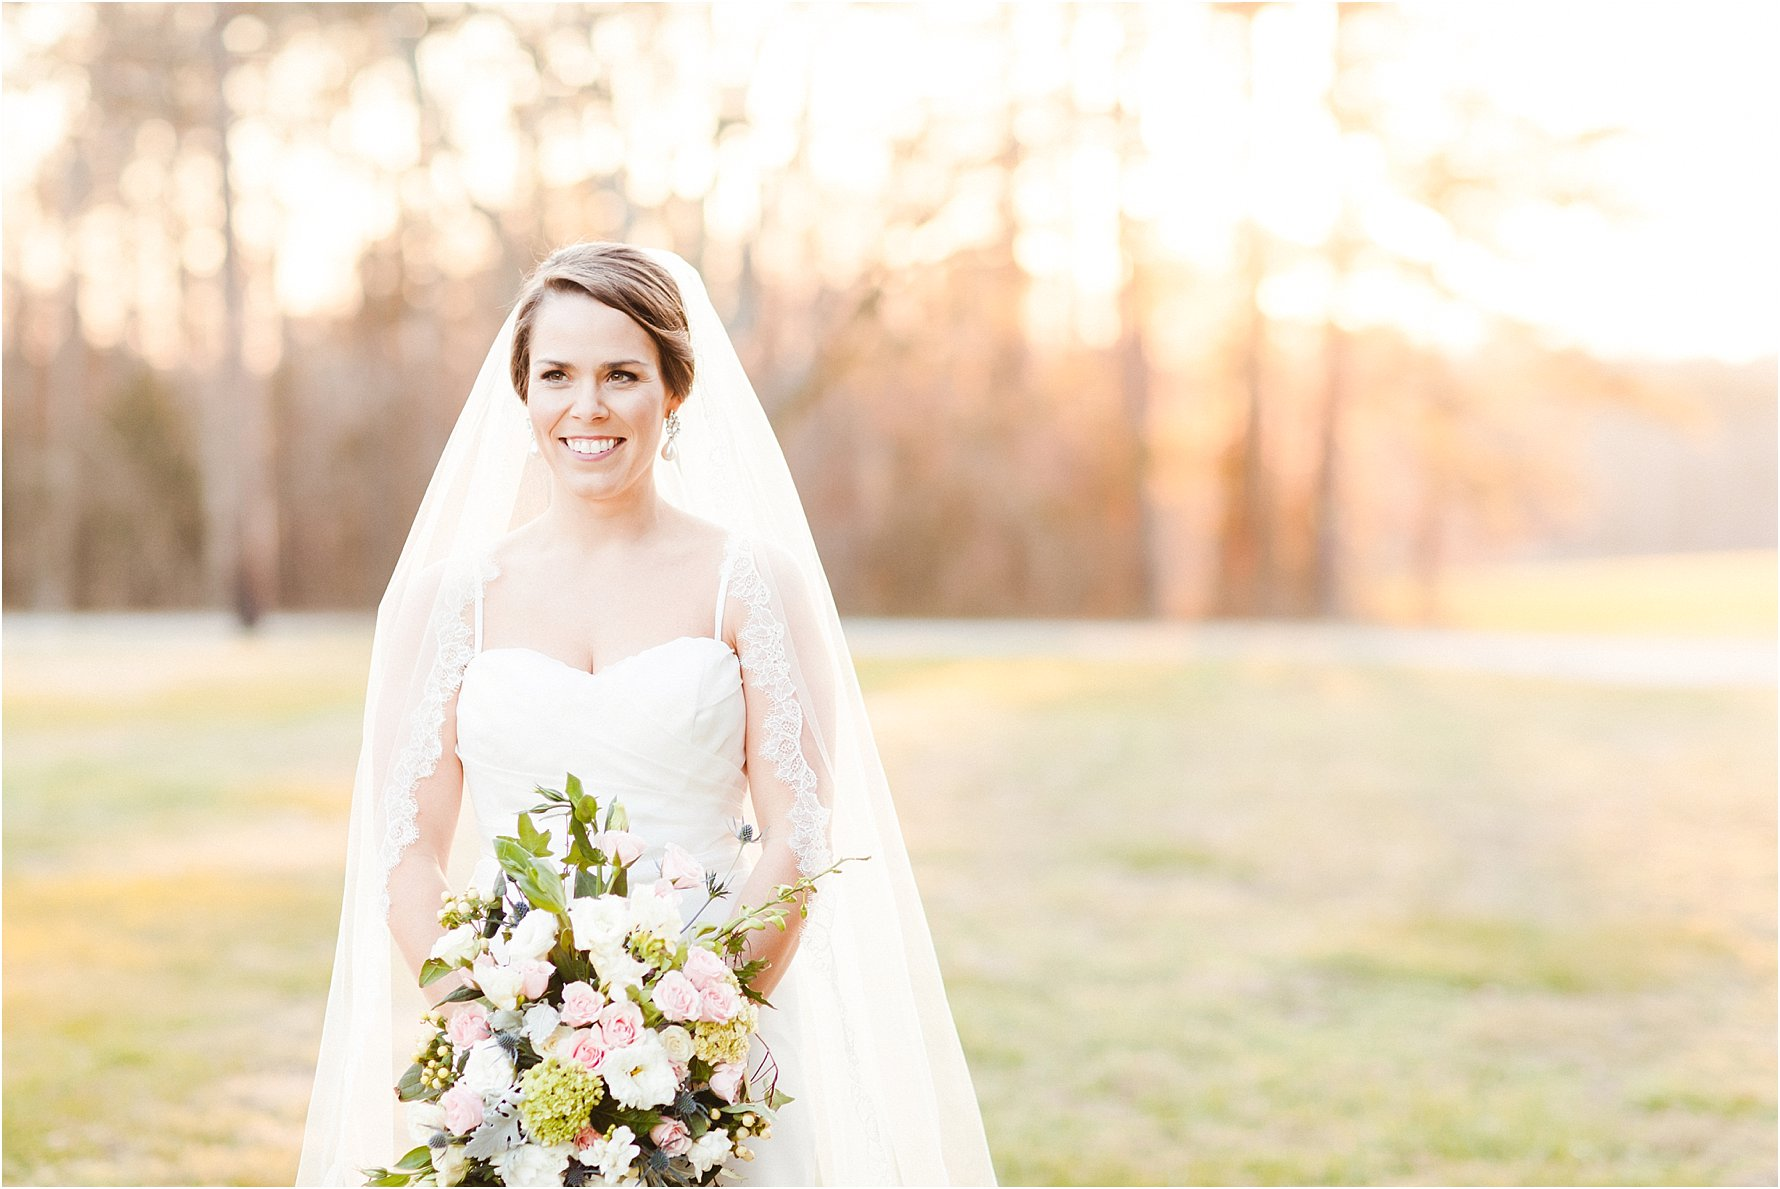 Classic Cathedral Veil Bridal Portraits in NC